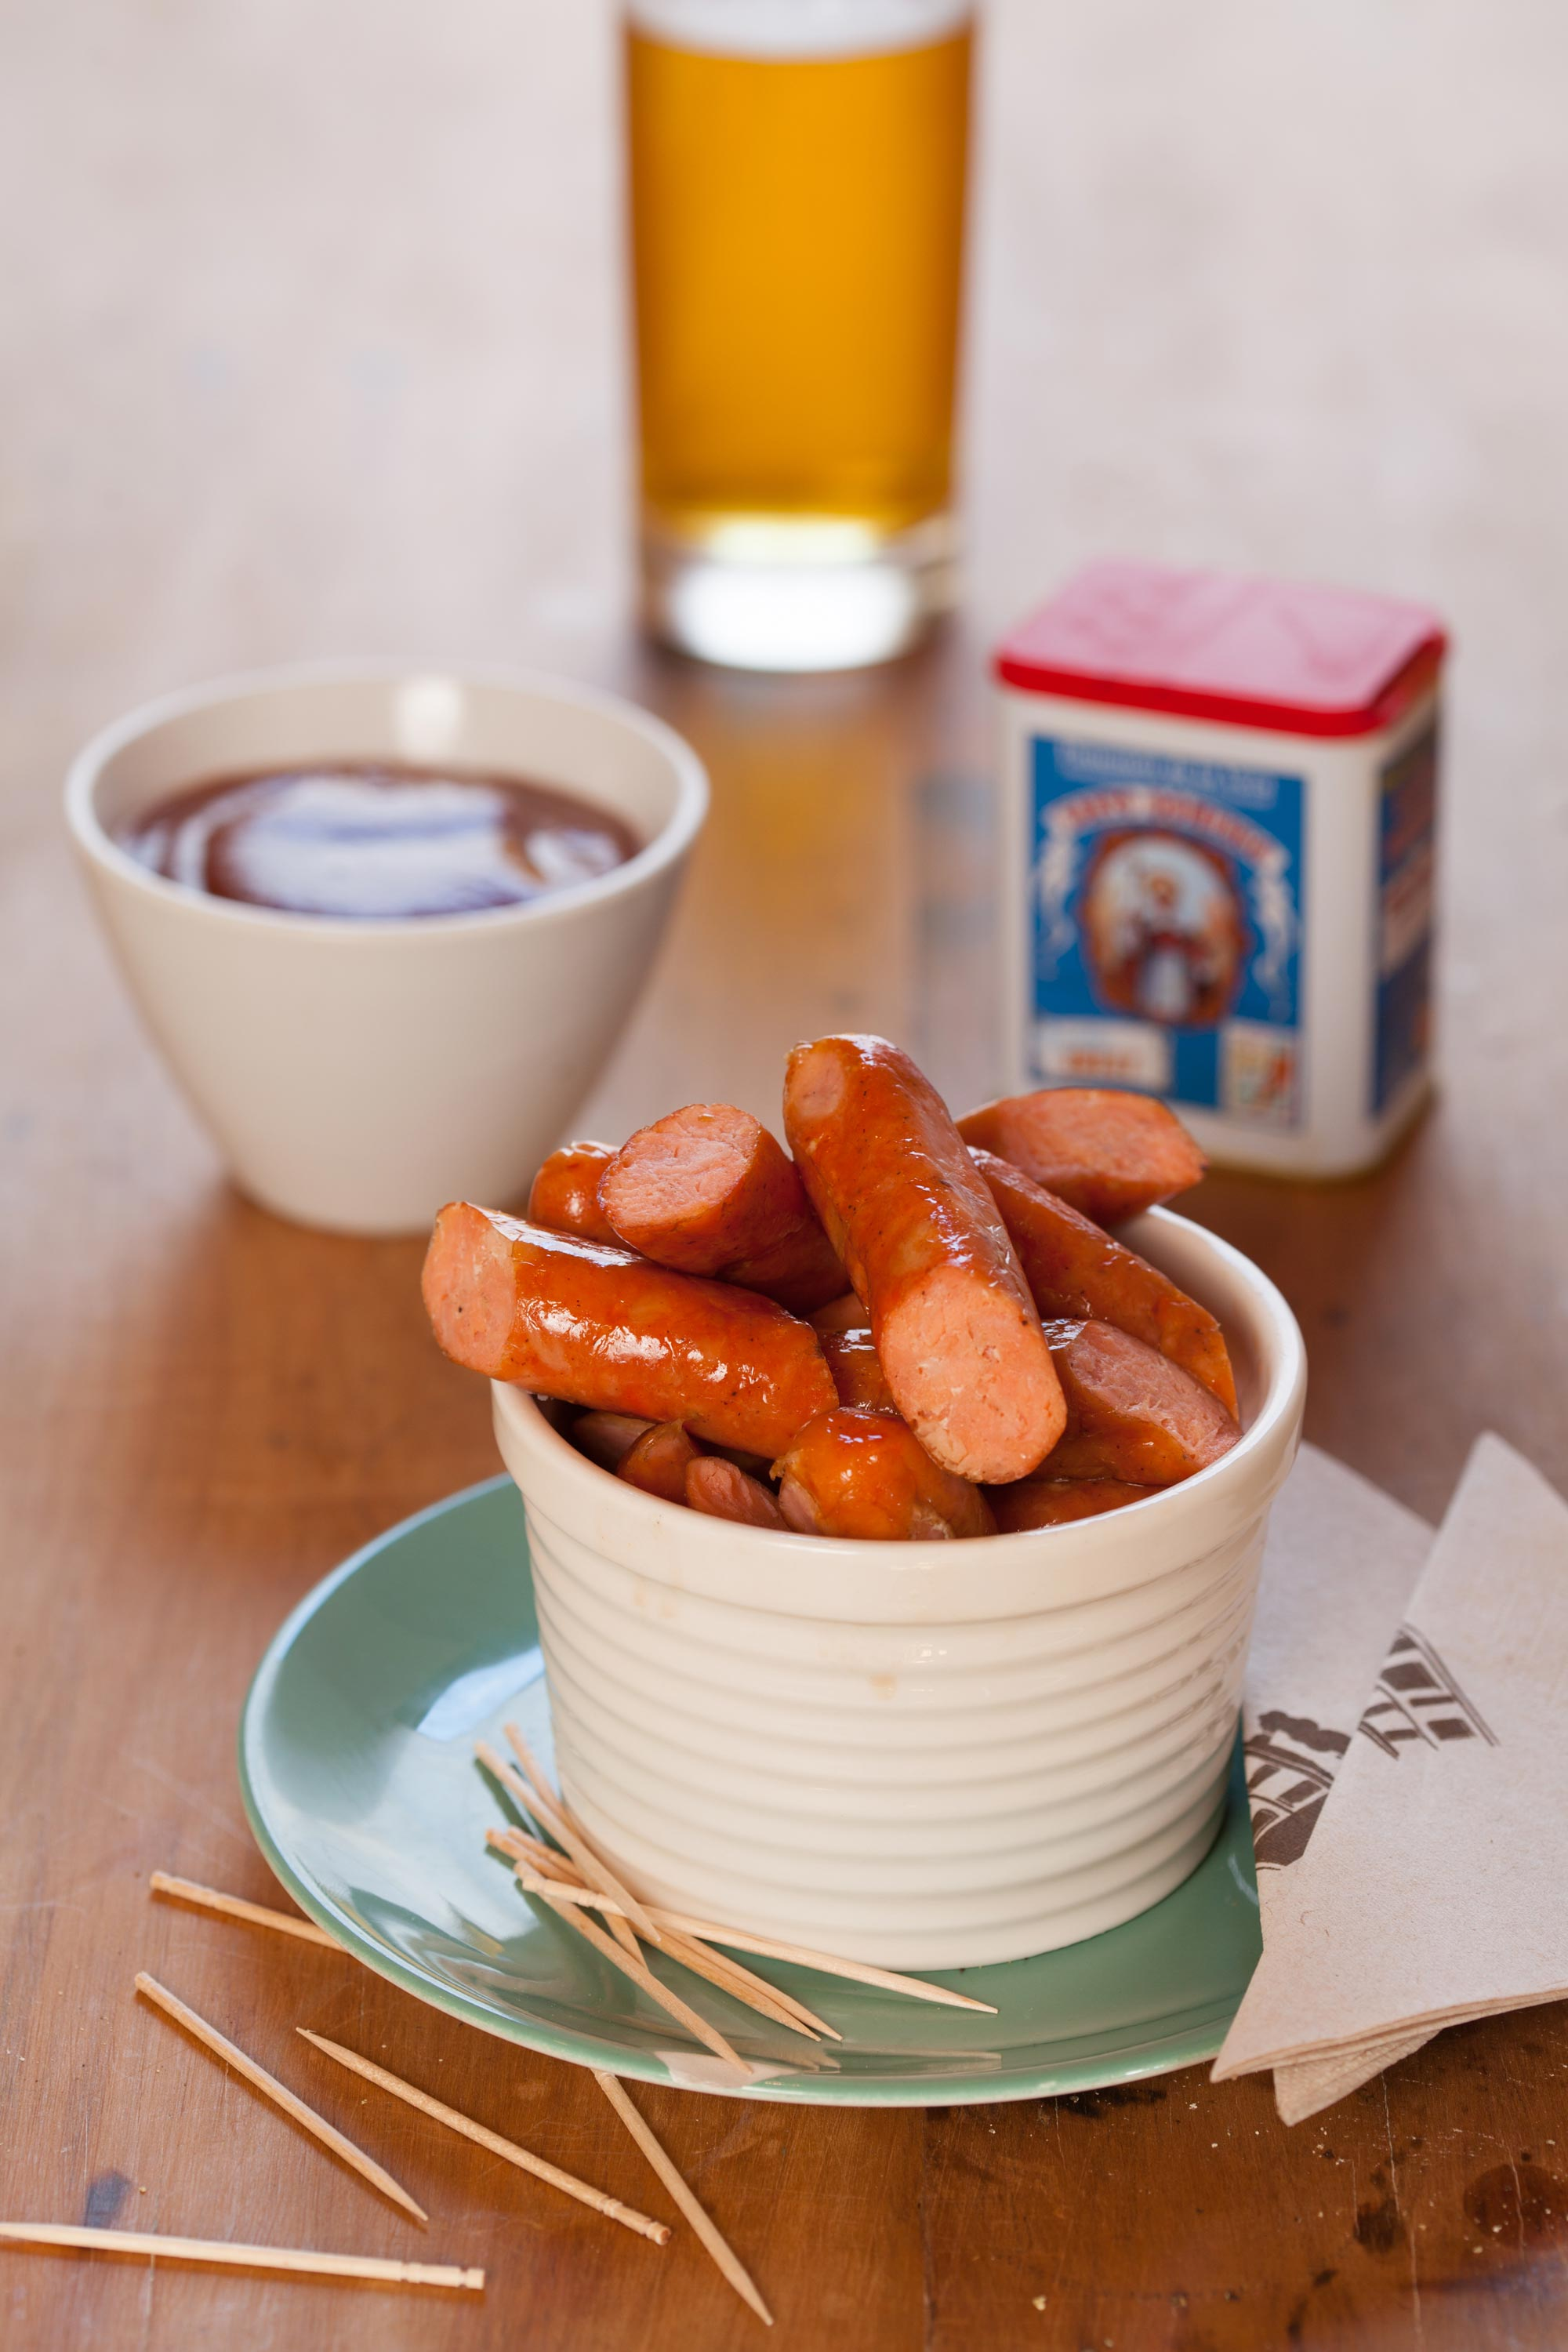 Salmon sausage cit into 1/3rds in a bowl with a dip